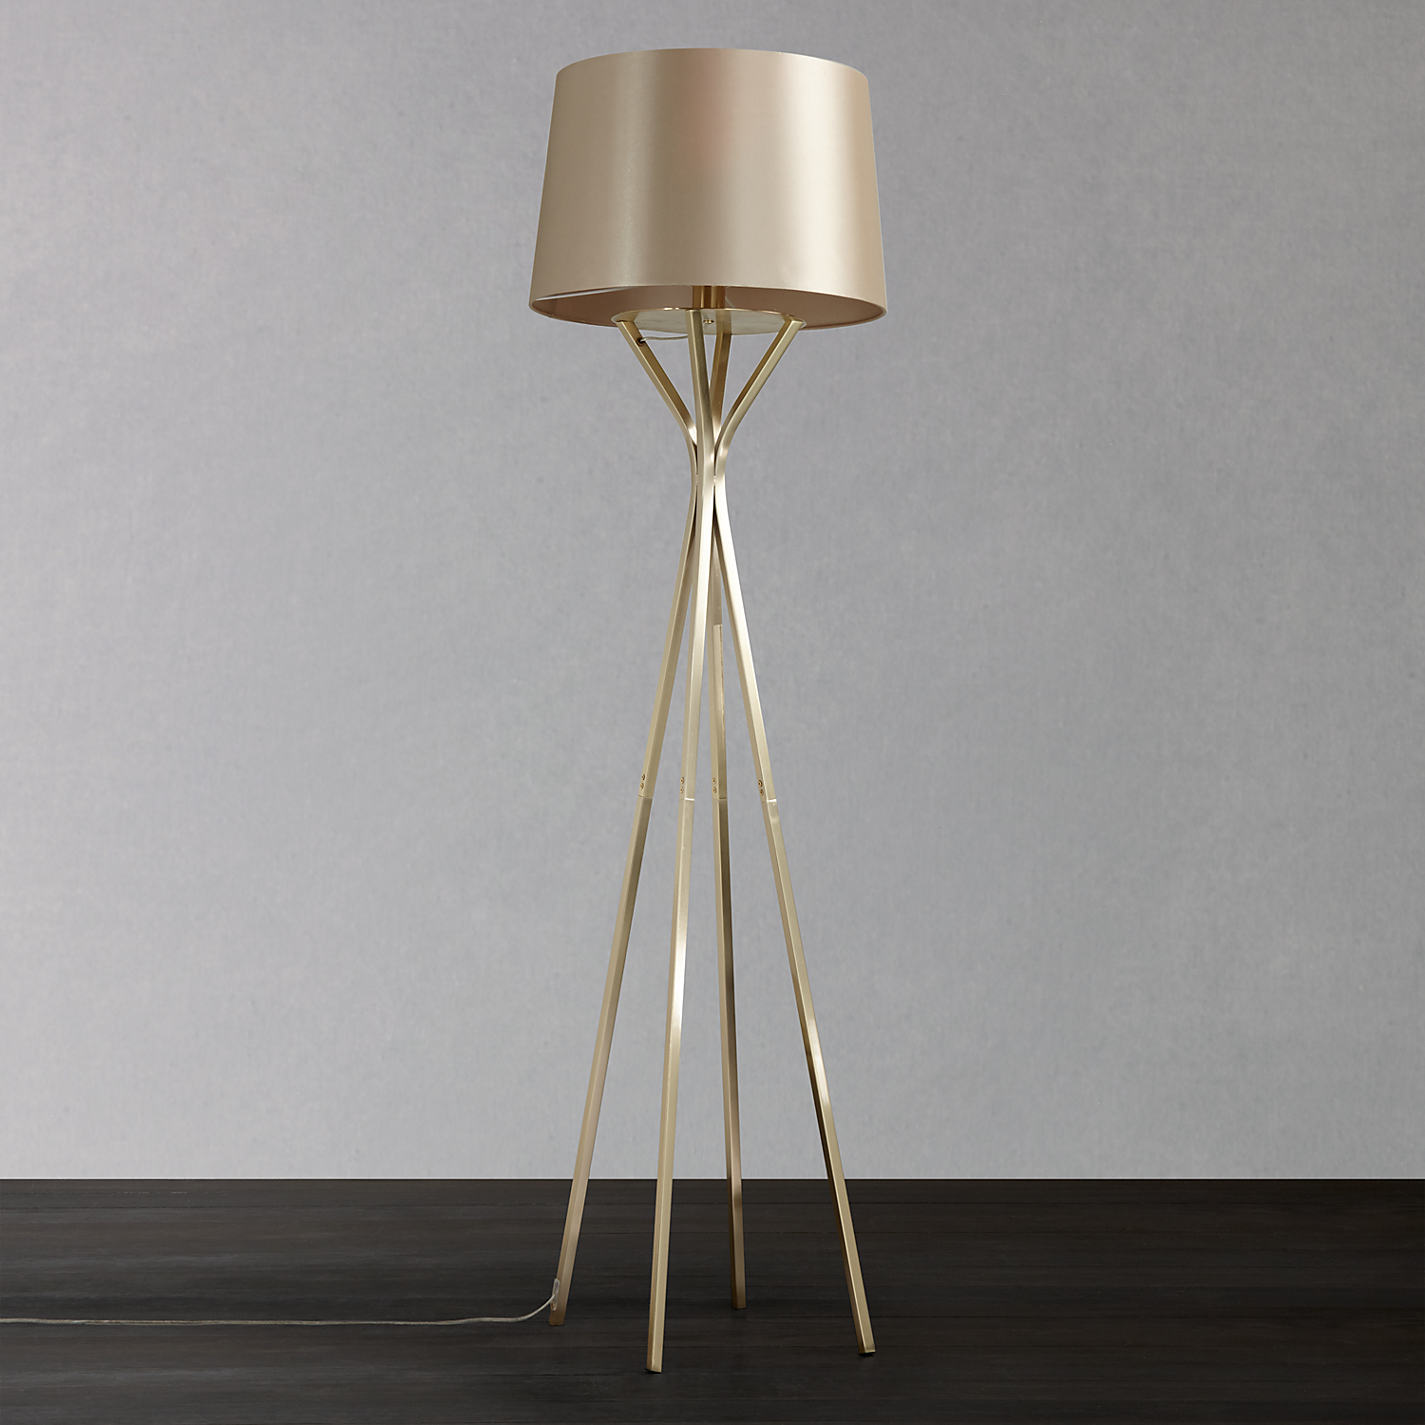 Tips on how to buy standard lamps - goodworksfurniture